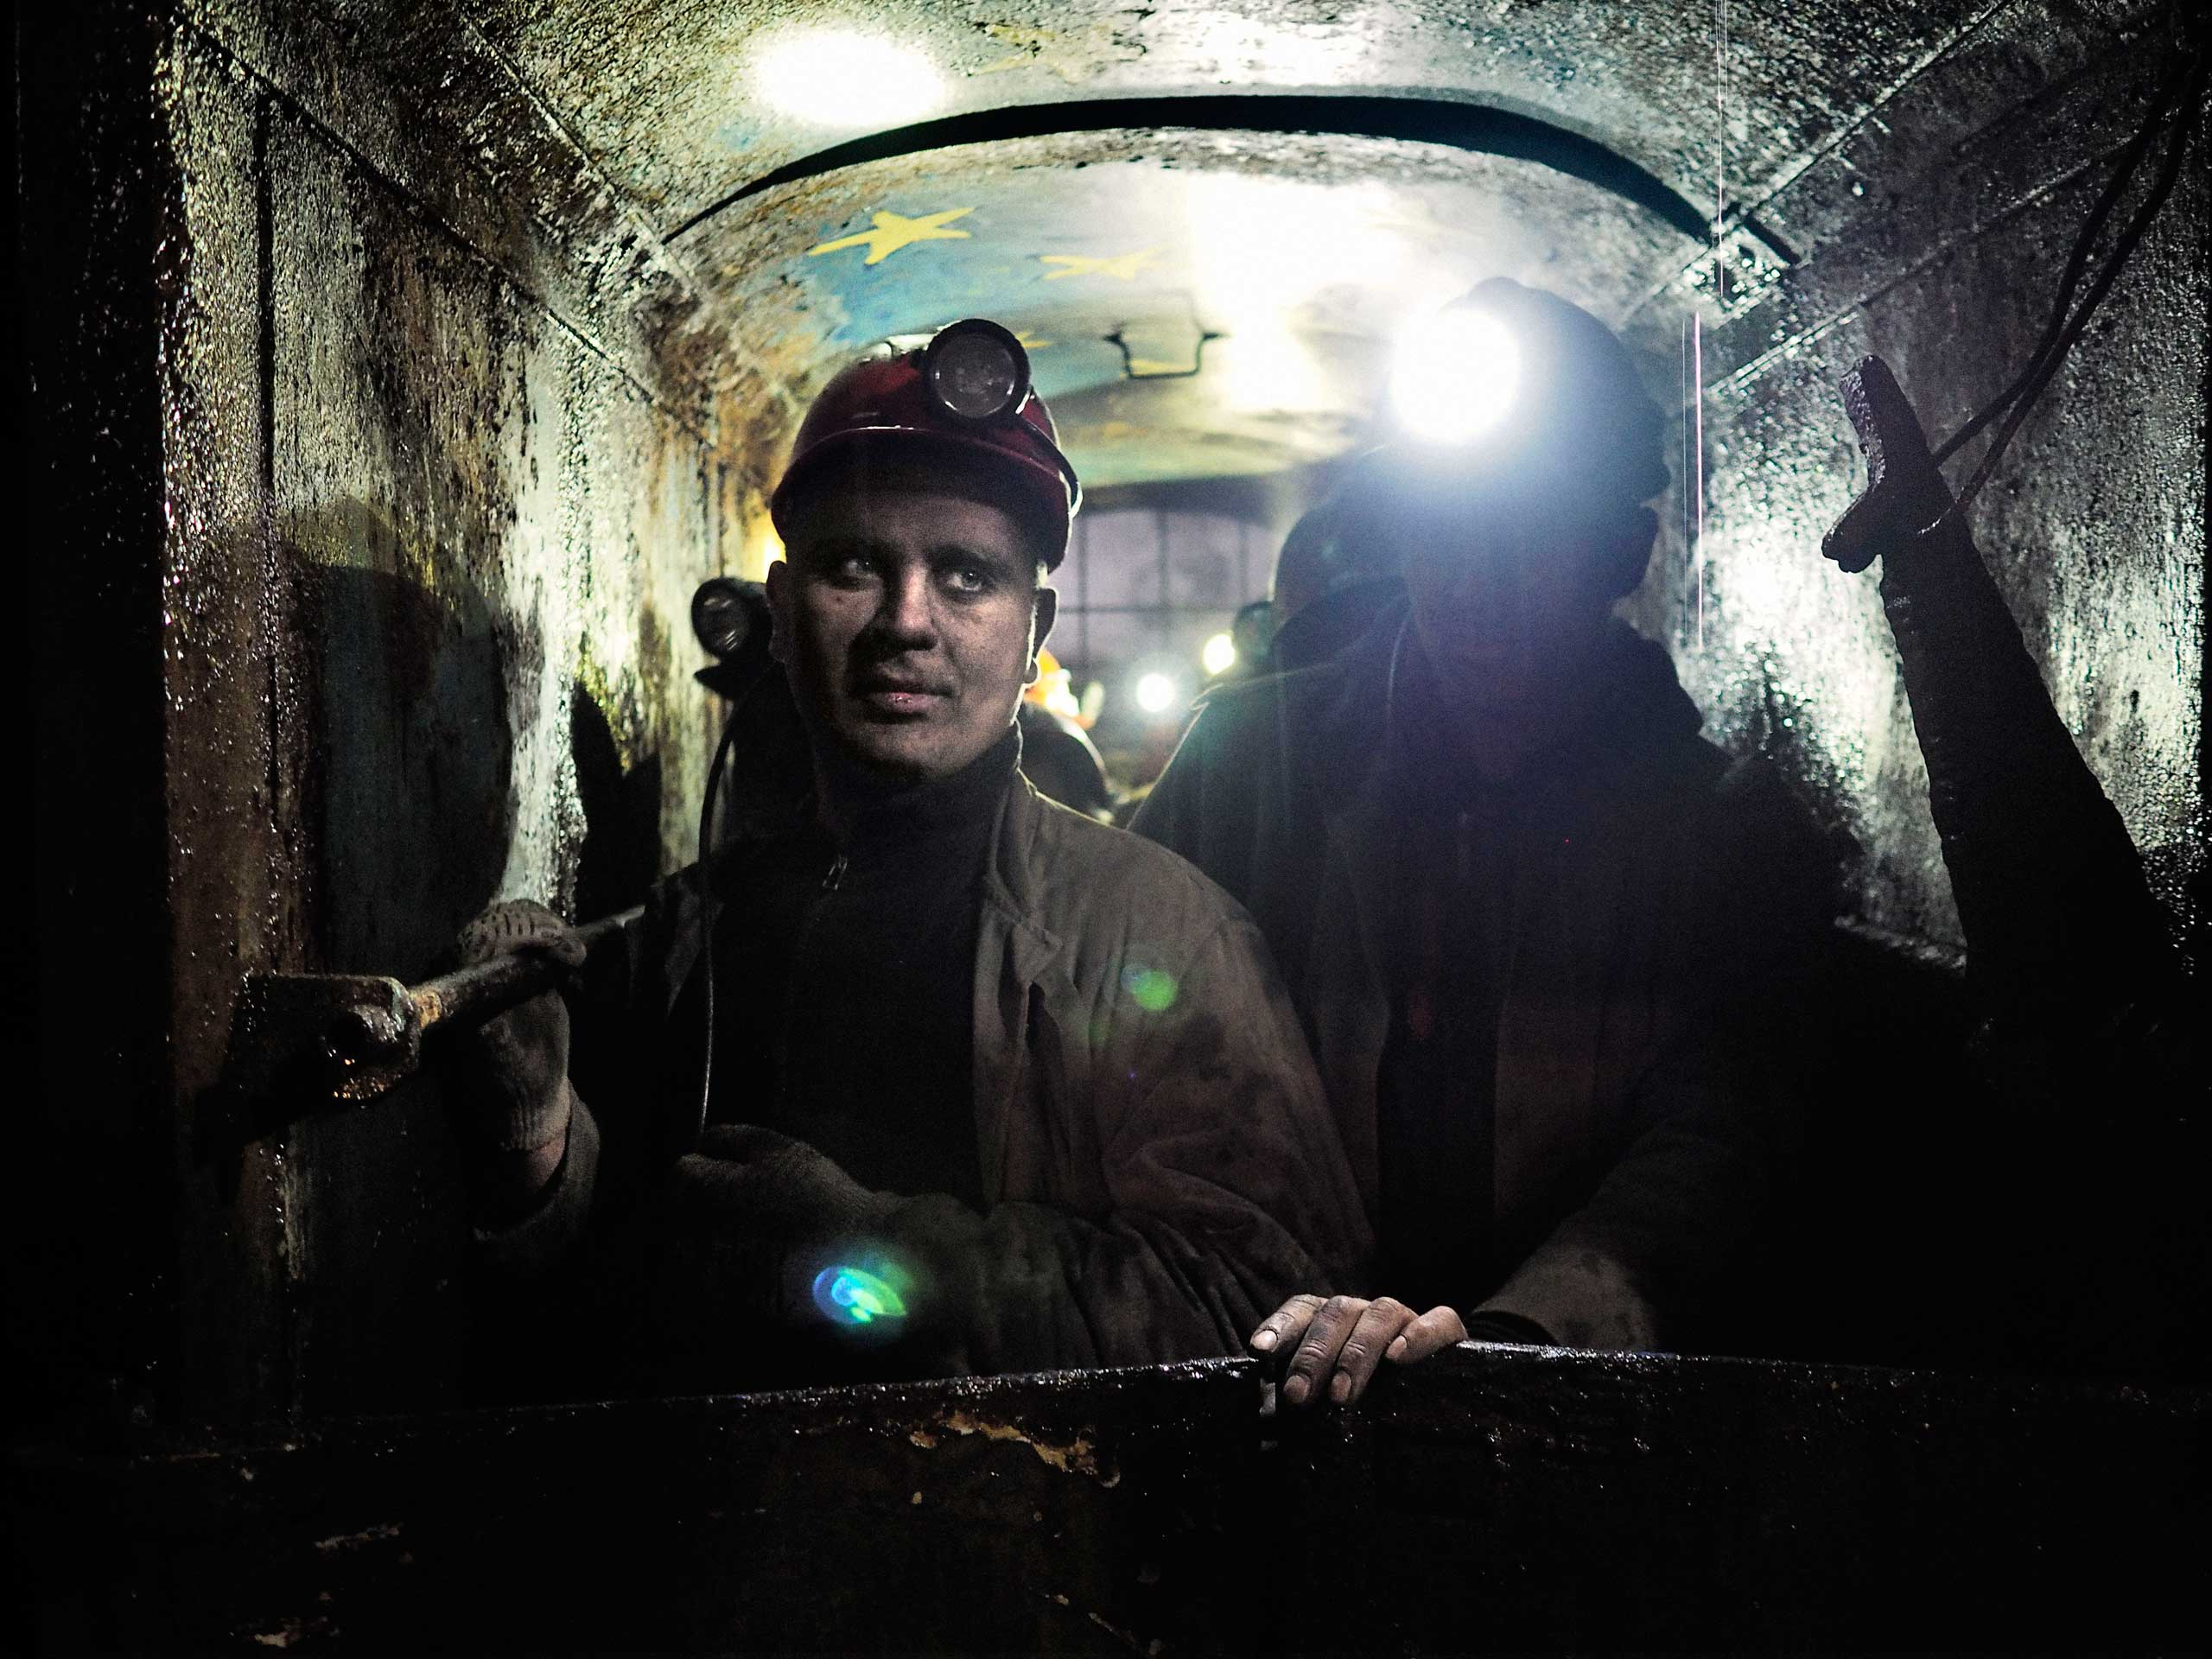 Miners at the Chelyuskintsev coal mine ride in an elevator toward ground level. Petrovskyi district, Donetsk, Ukraine. Nov. 24, 2014.